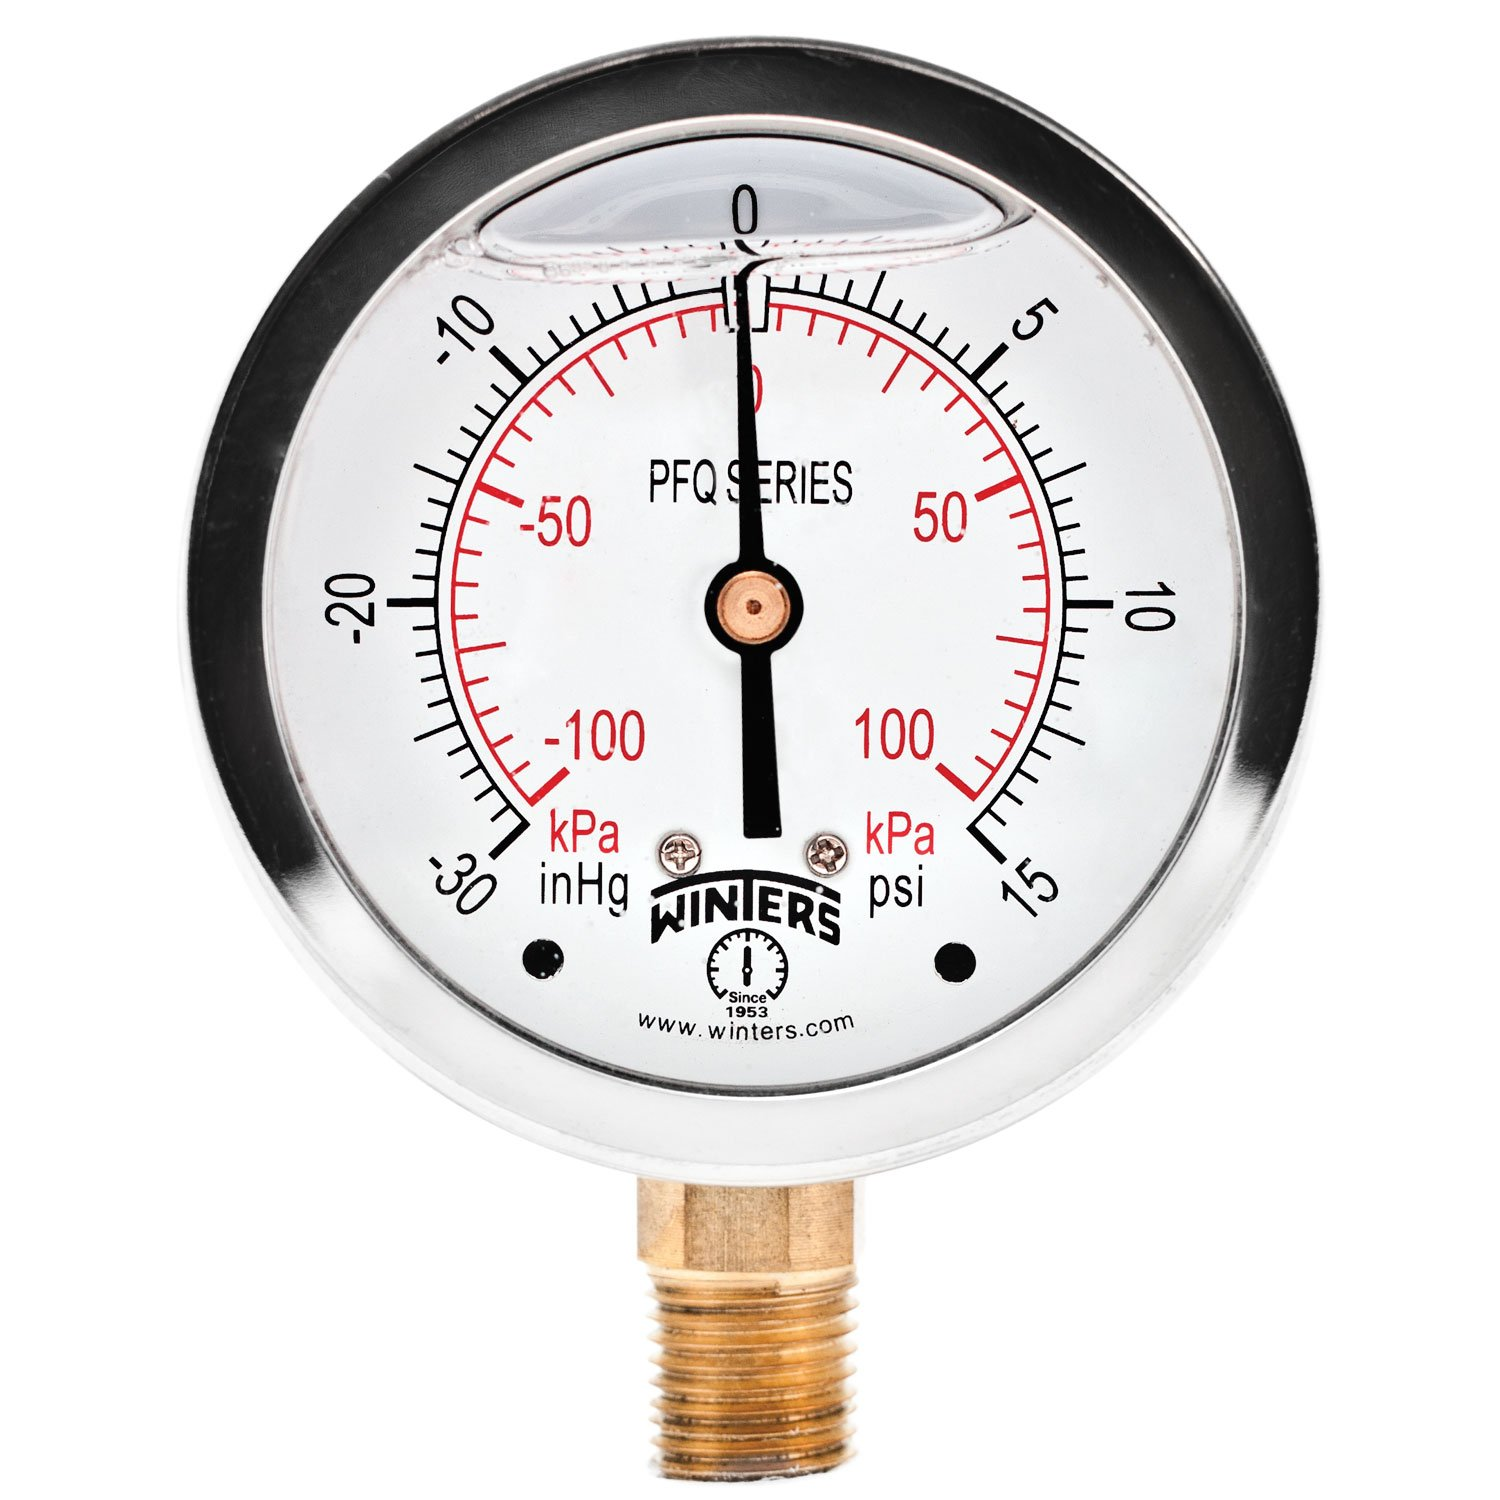 Winters PFQ Series shop Stainless Steel Dual Filled online shopping Liquid 304 Scale